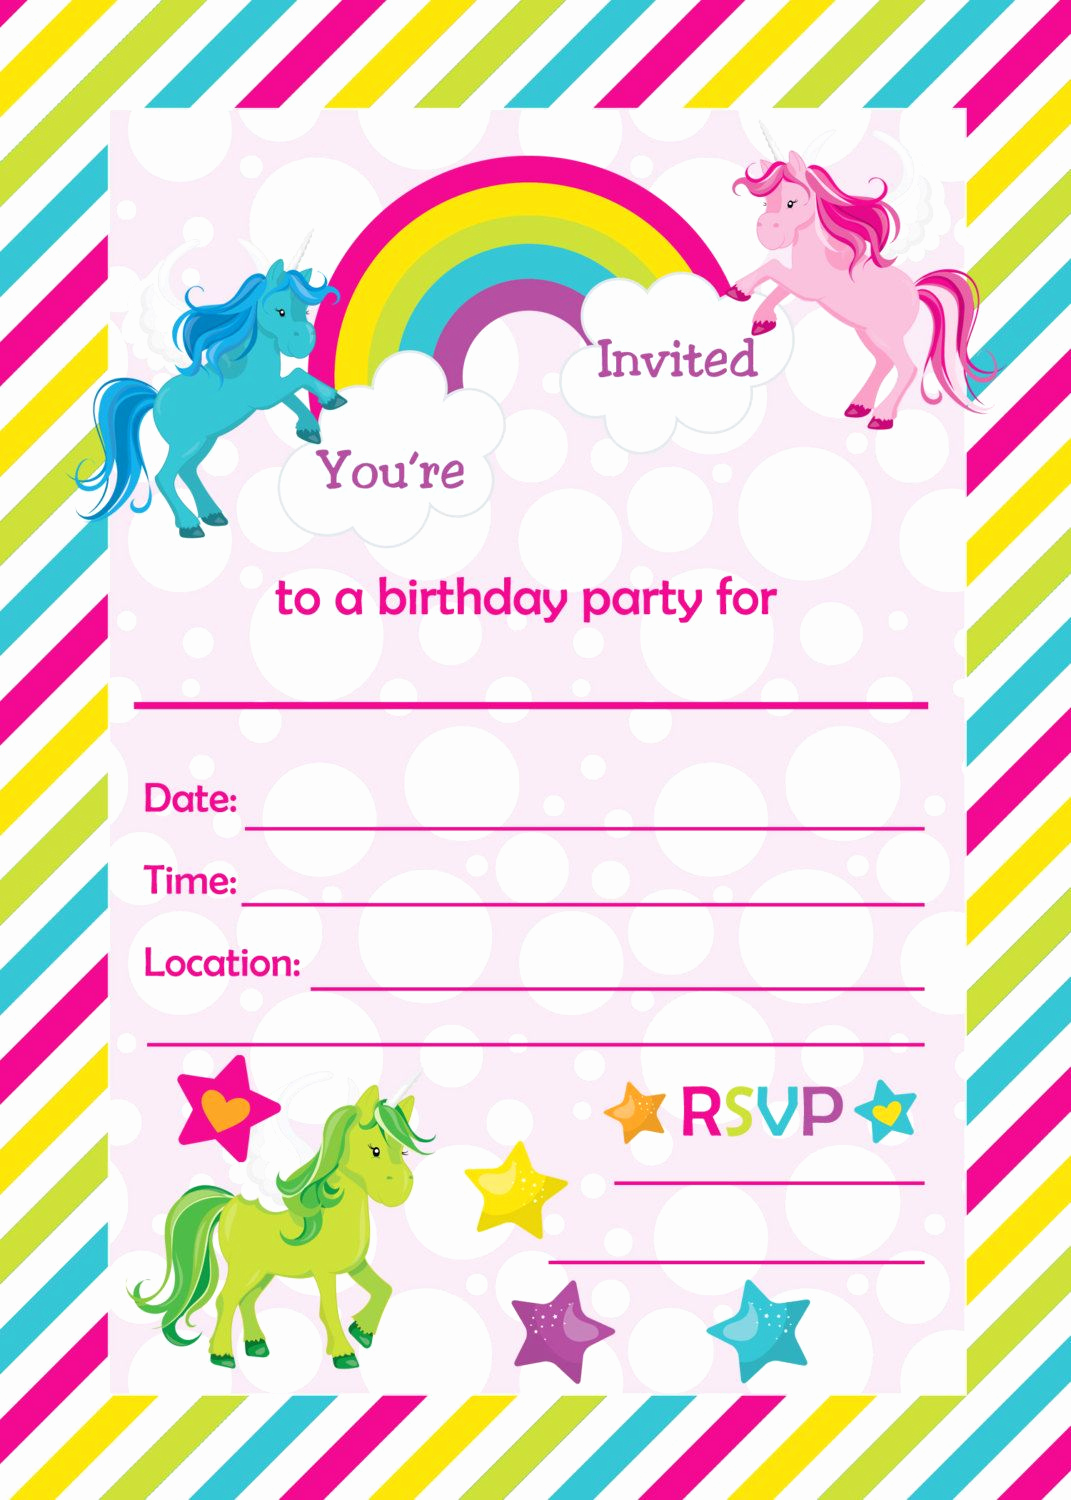 Free Printable Birthday Invitation Templates Inspirational Fill In Birthday Party Invitations Printable Rainbows and